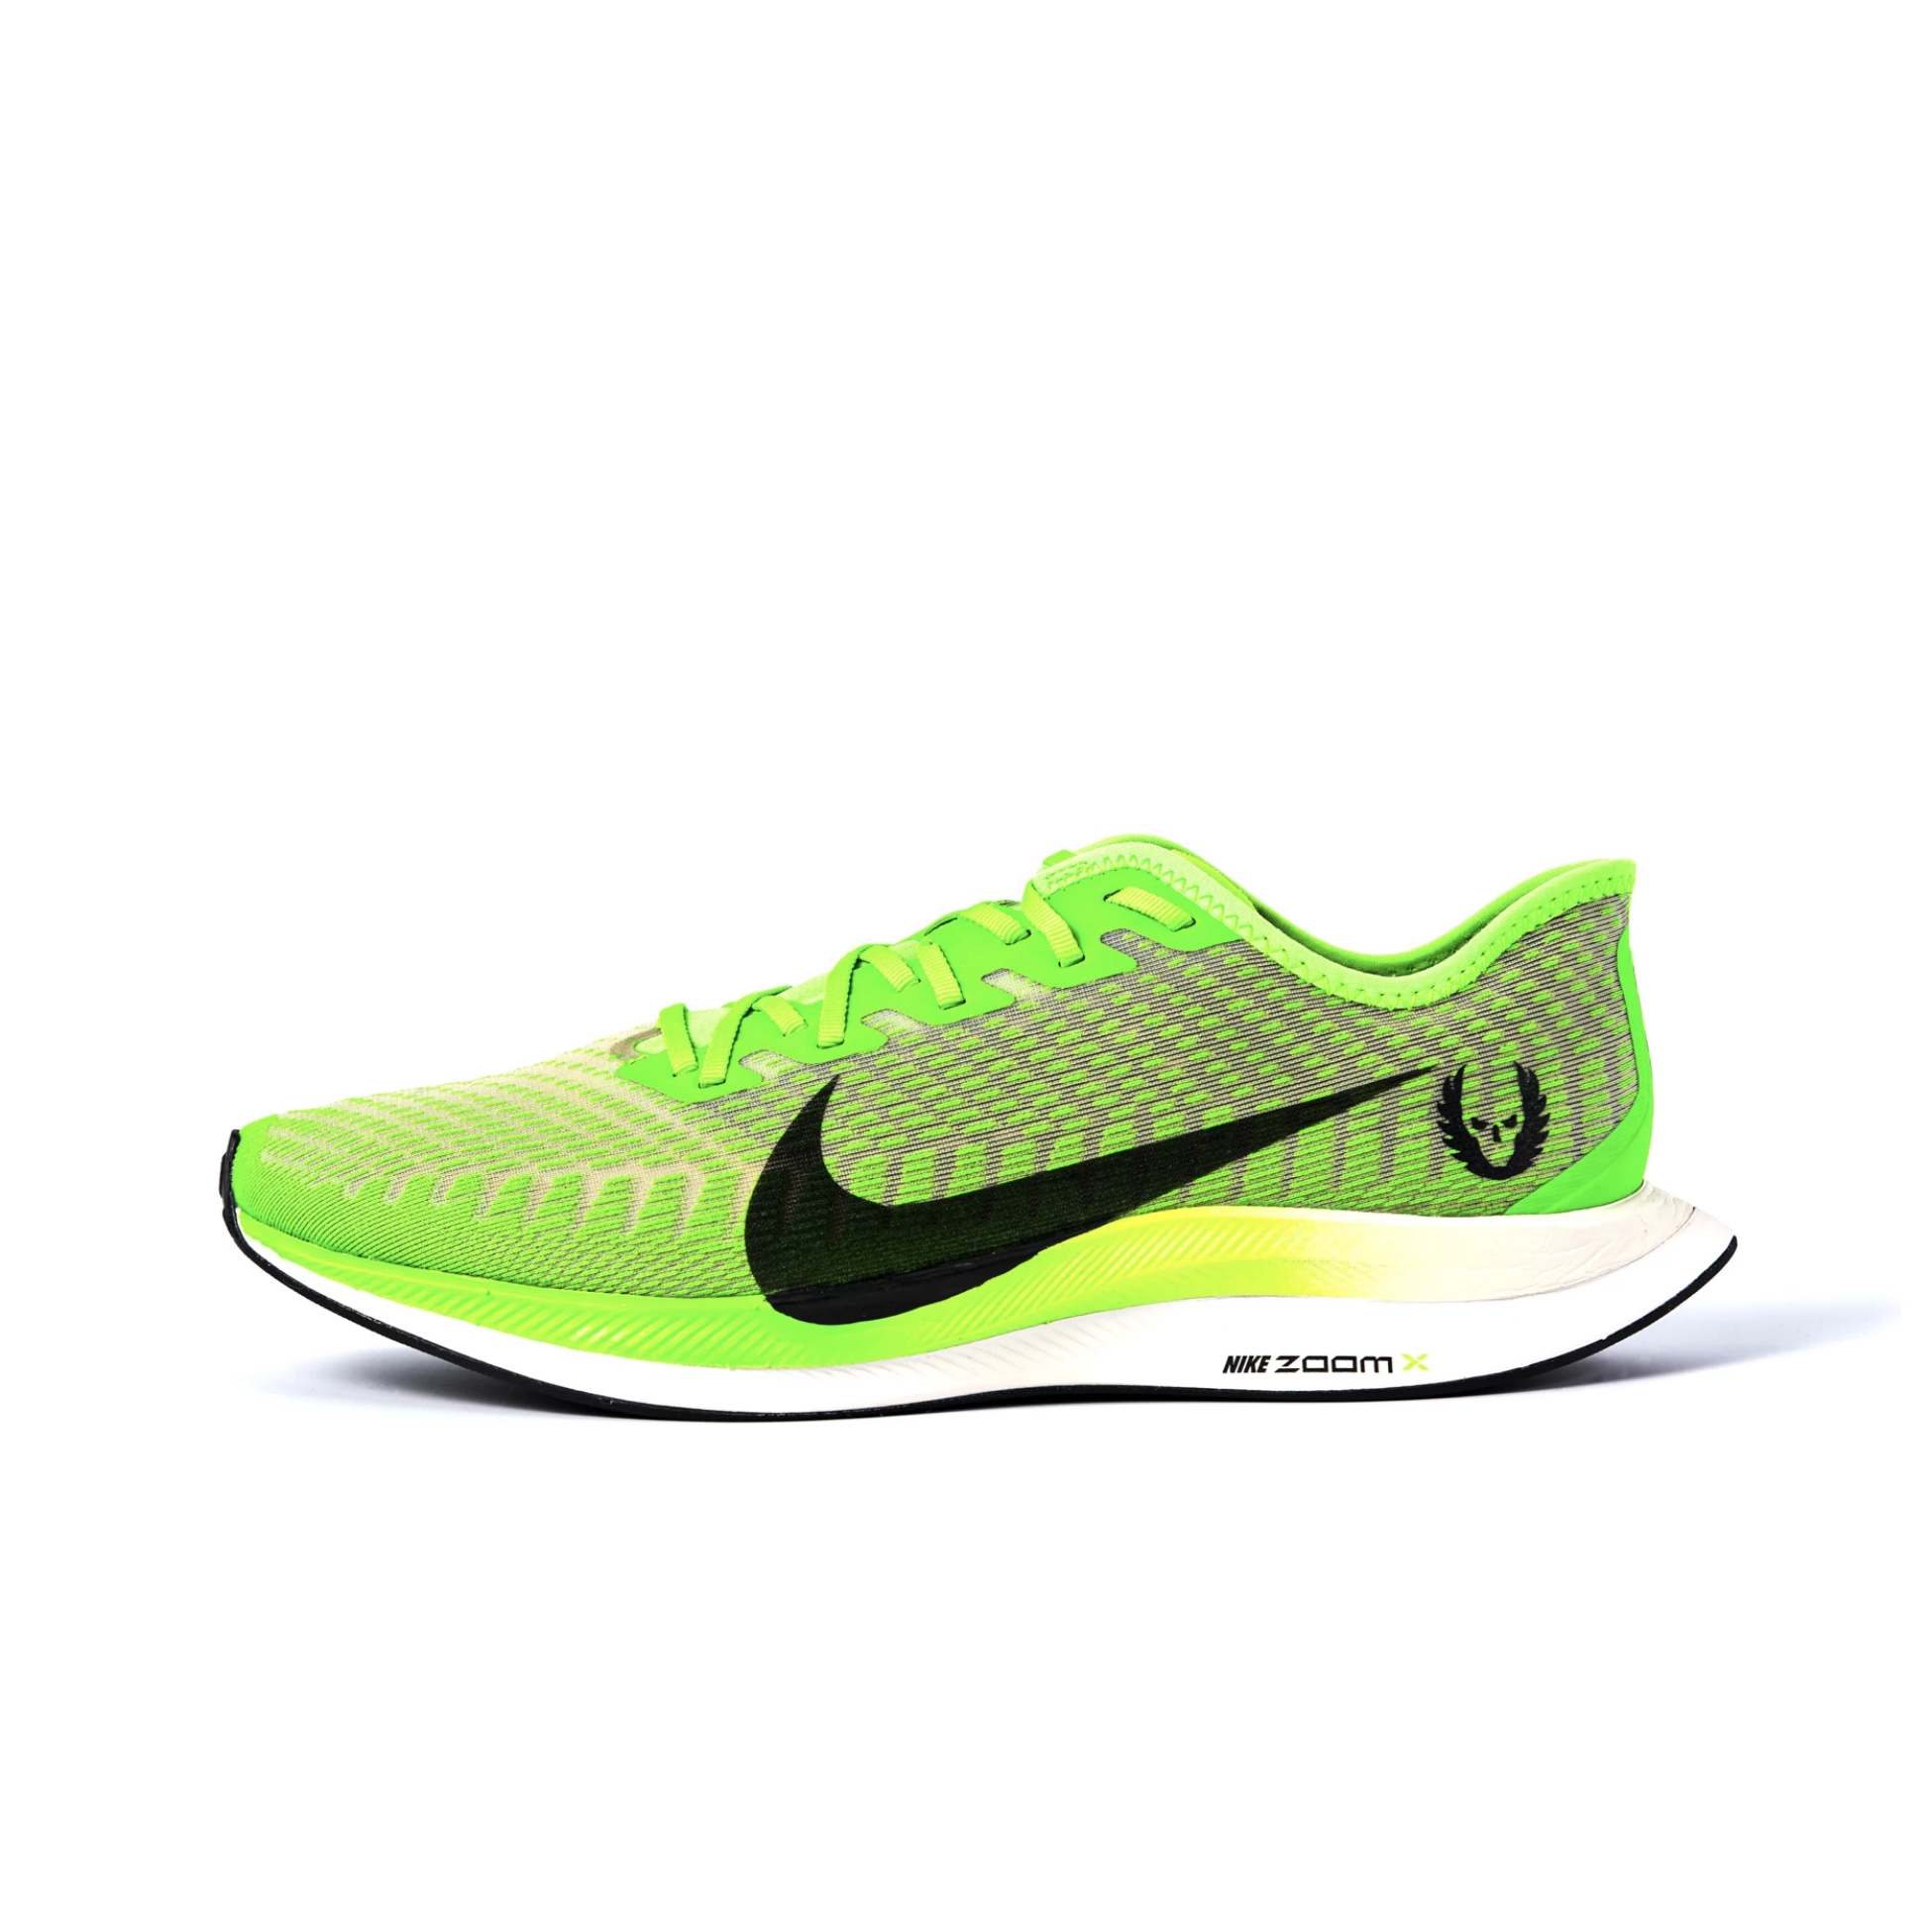 new arrival quite nice picked up Nike Oregon Project Pegasus 36